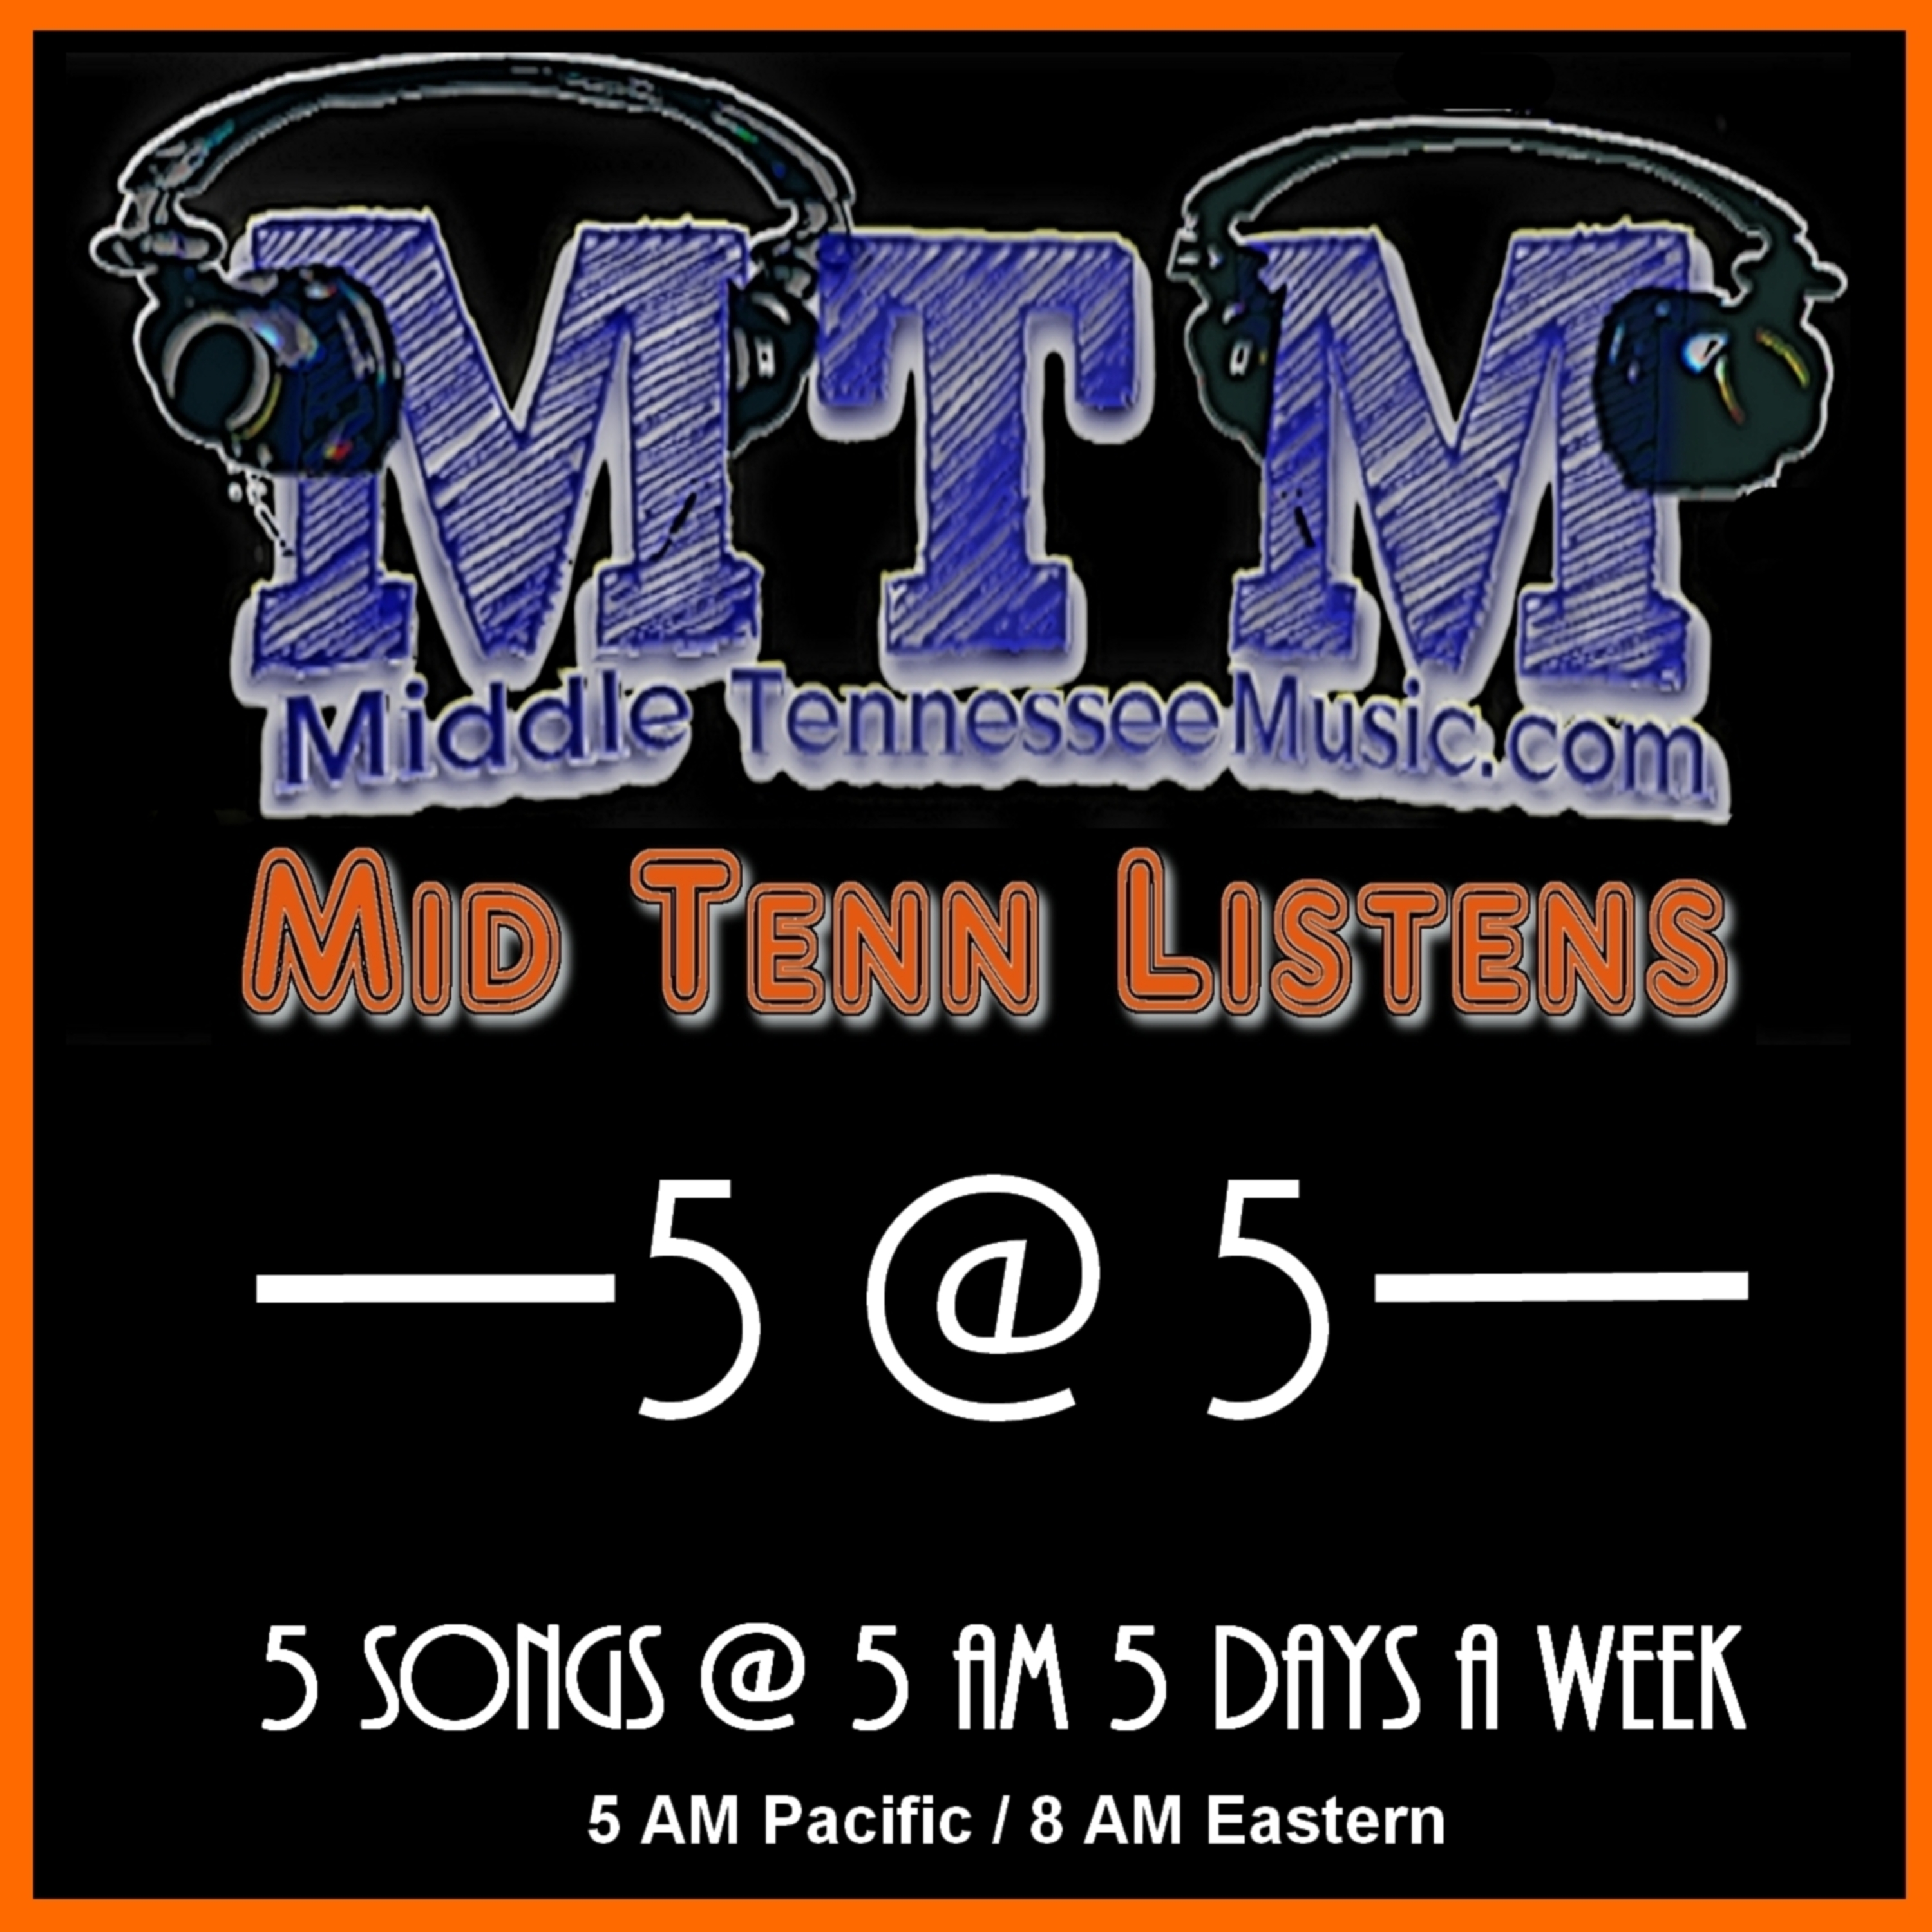 Mid Tenn Listens - Supporting Indie Music